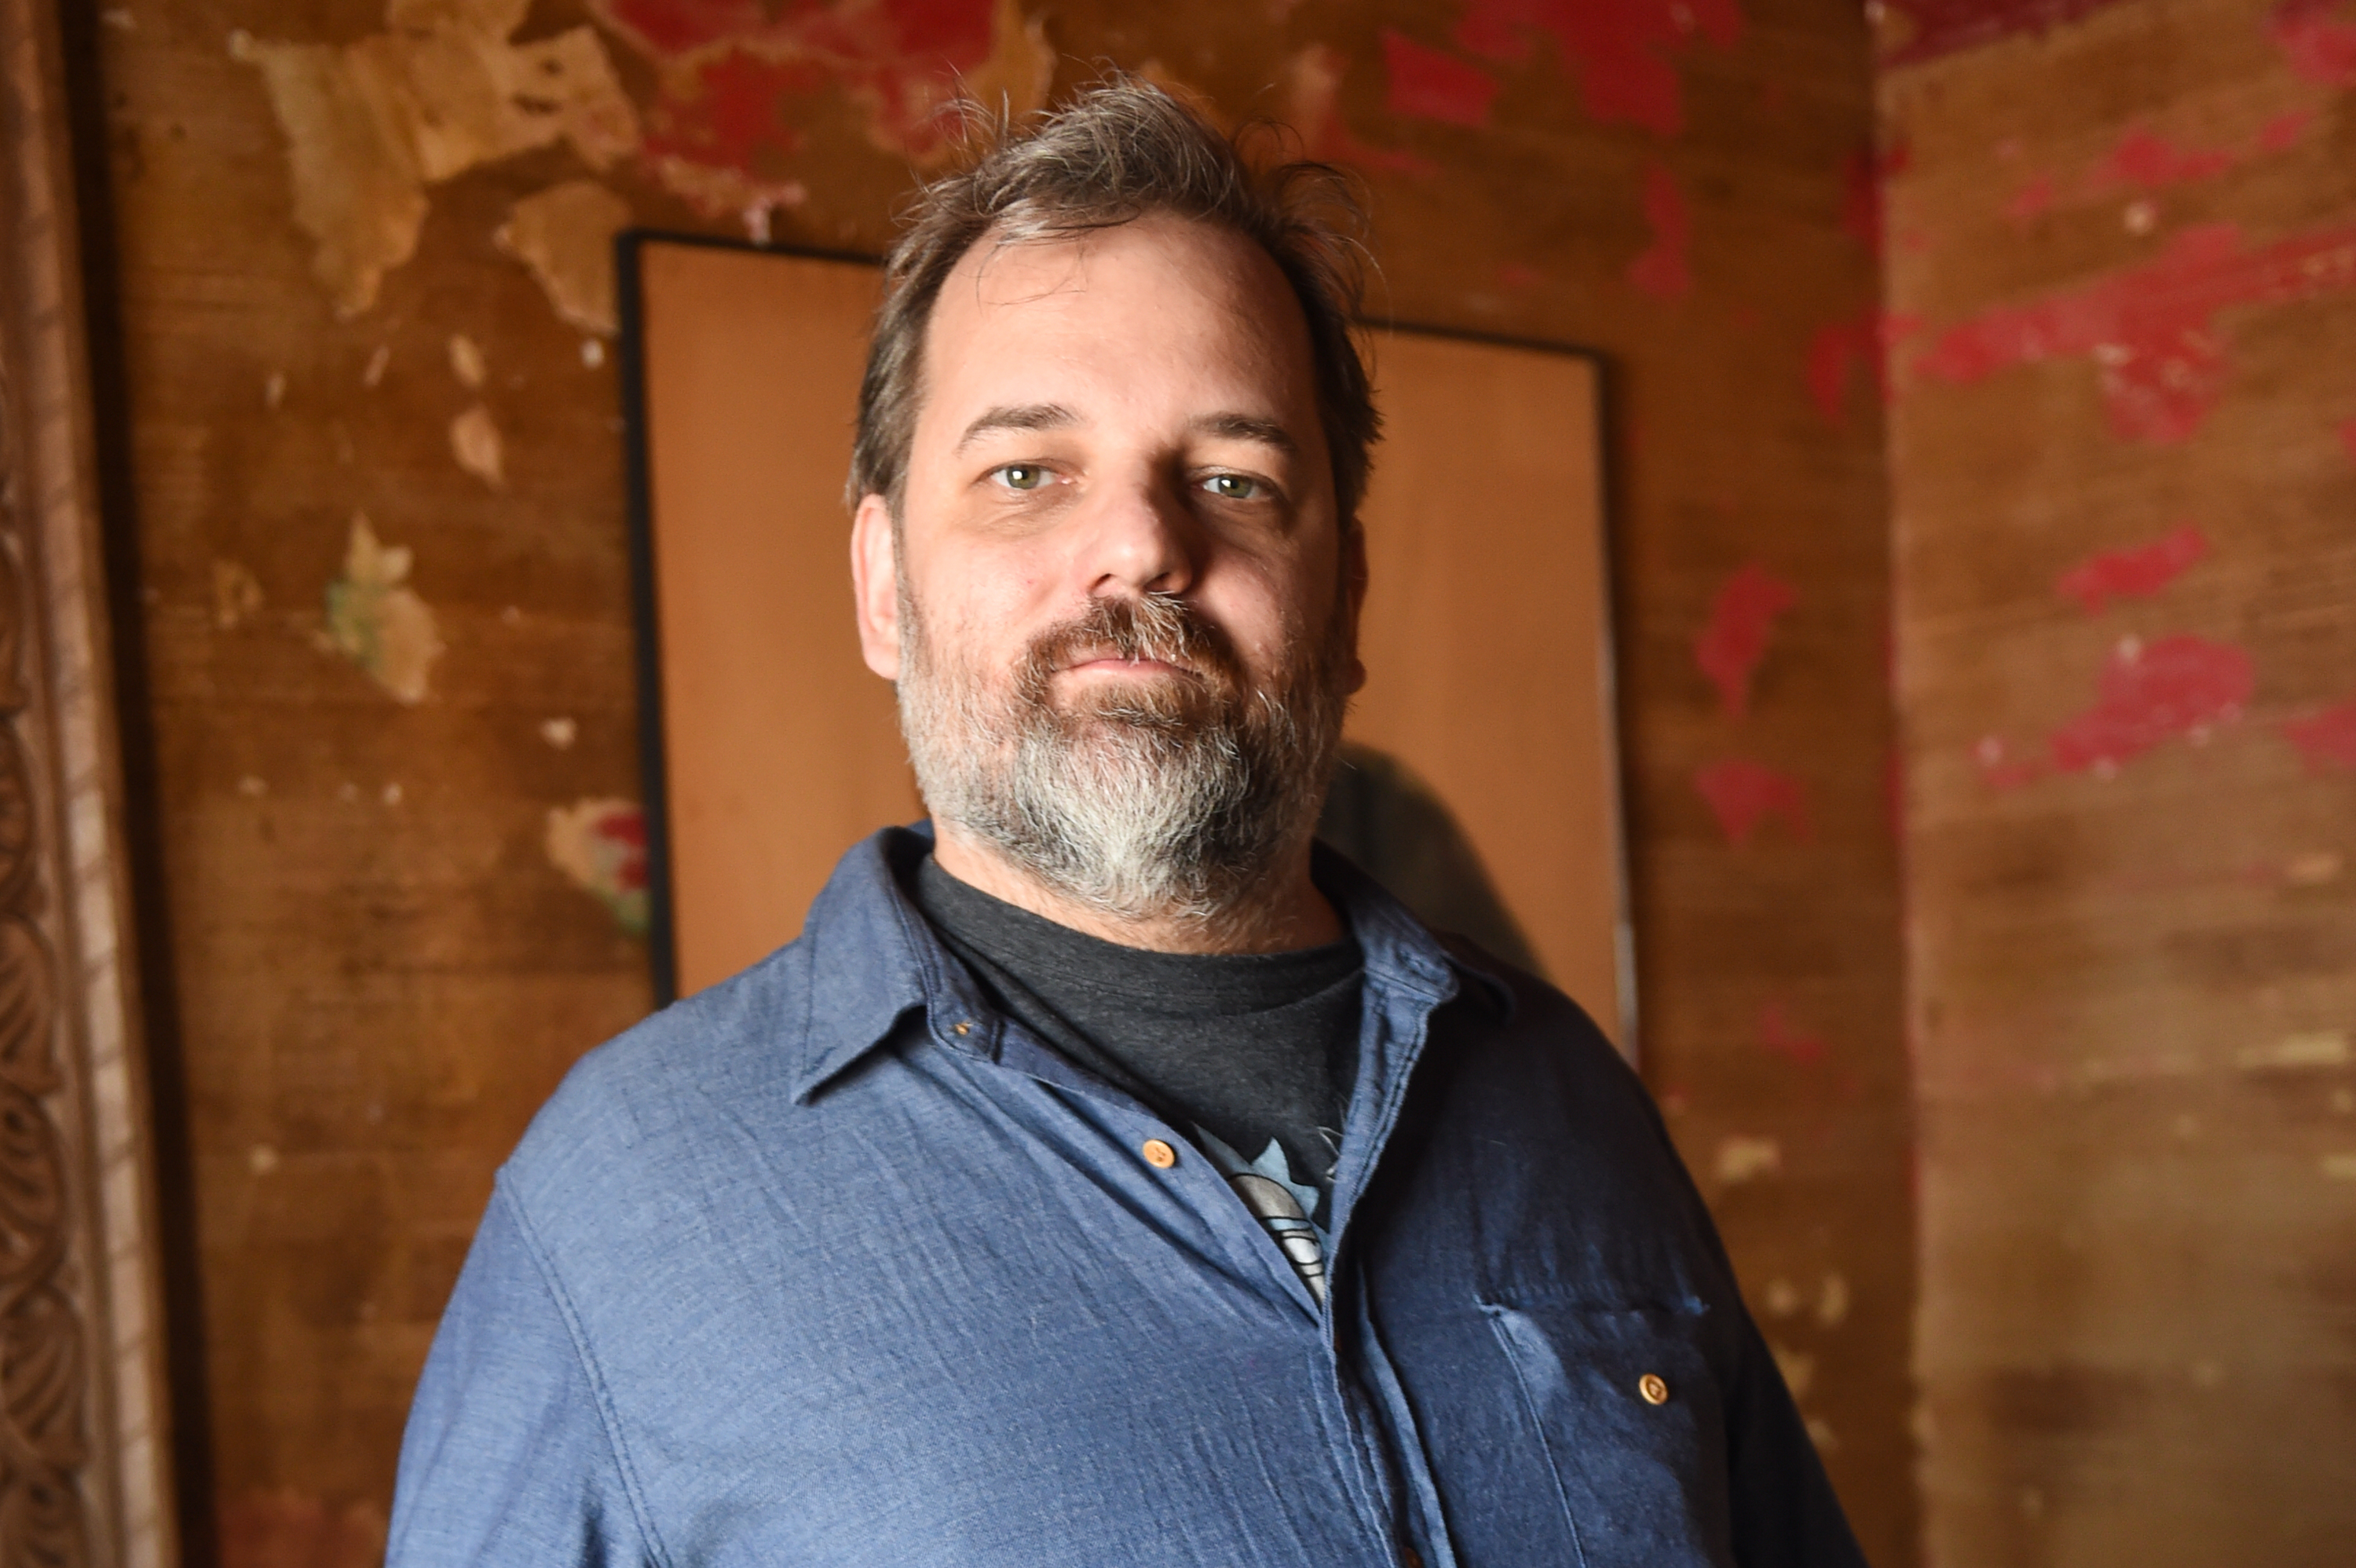 Most harassment apologies are just damage control. Dan Harmon's was a self-reckoning.